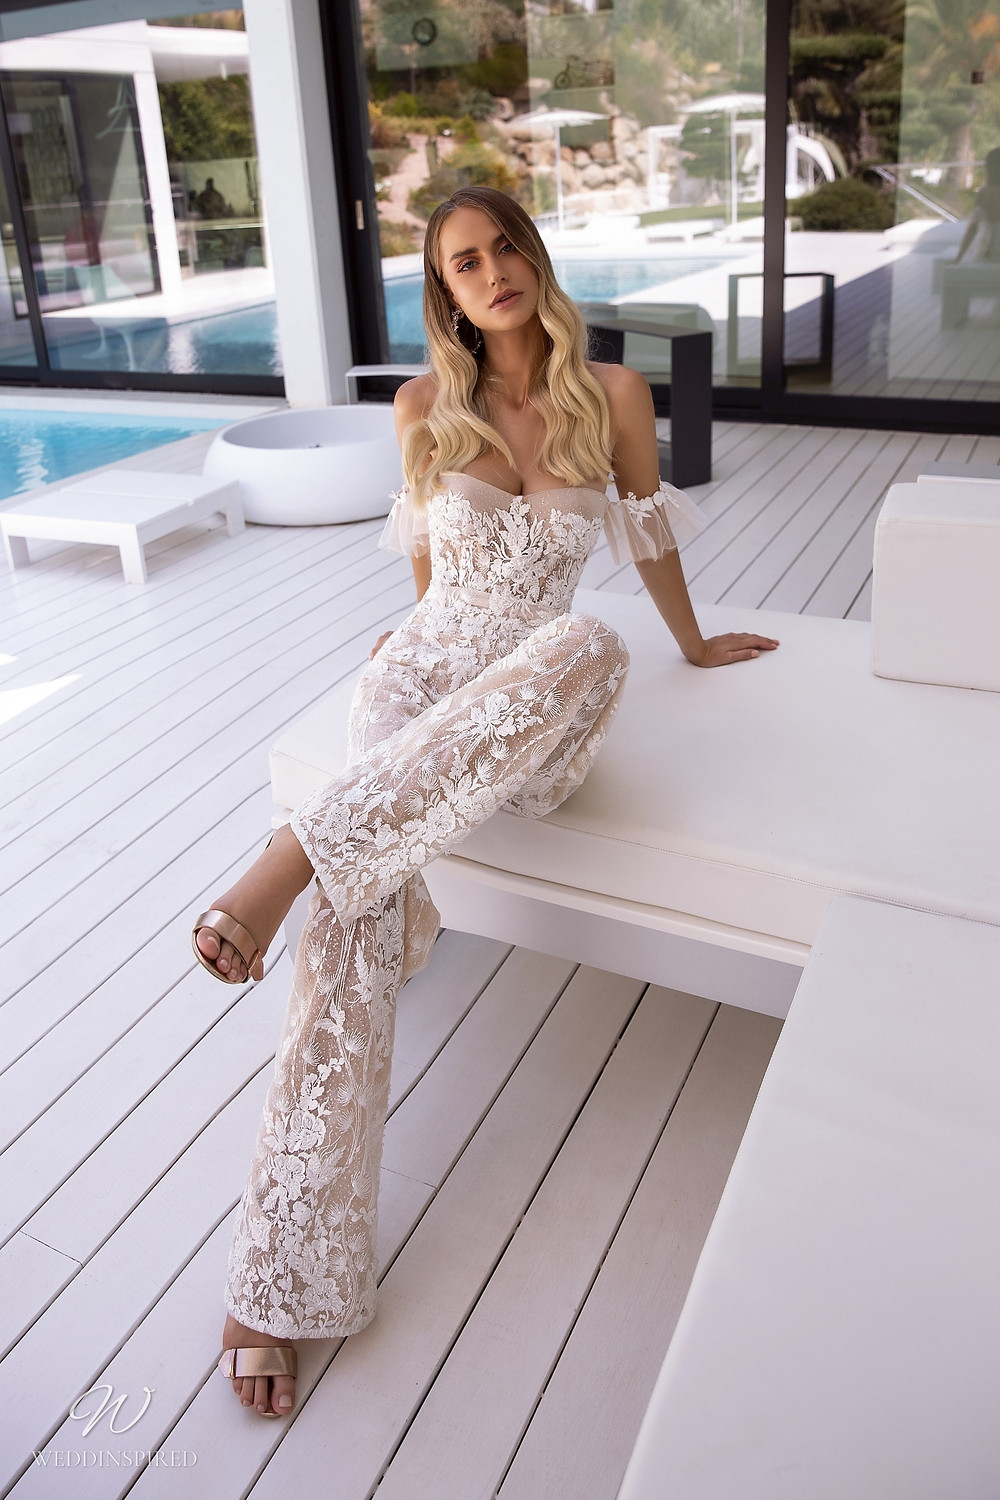 A Tina Valerdi strapless lace wedding jumpsuit or pantsuit with a sweetheart neckline